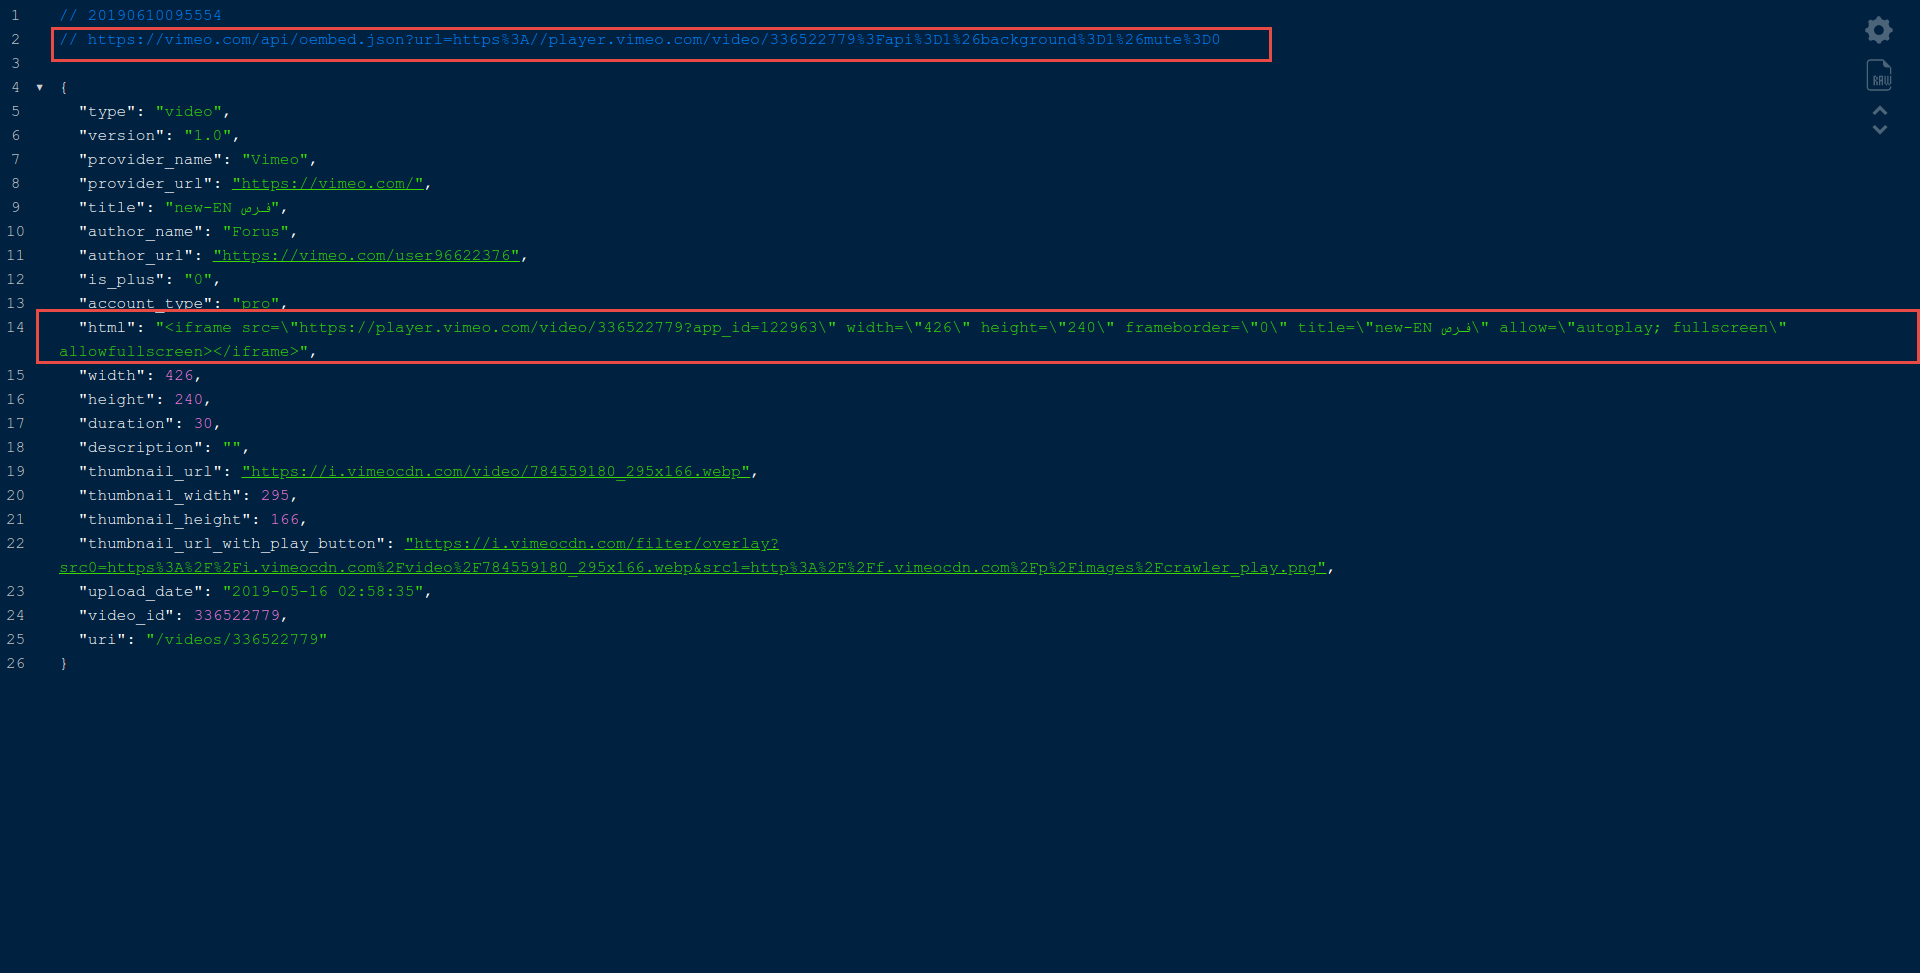 oembed link does not pass the URL parameter to the provider